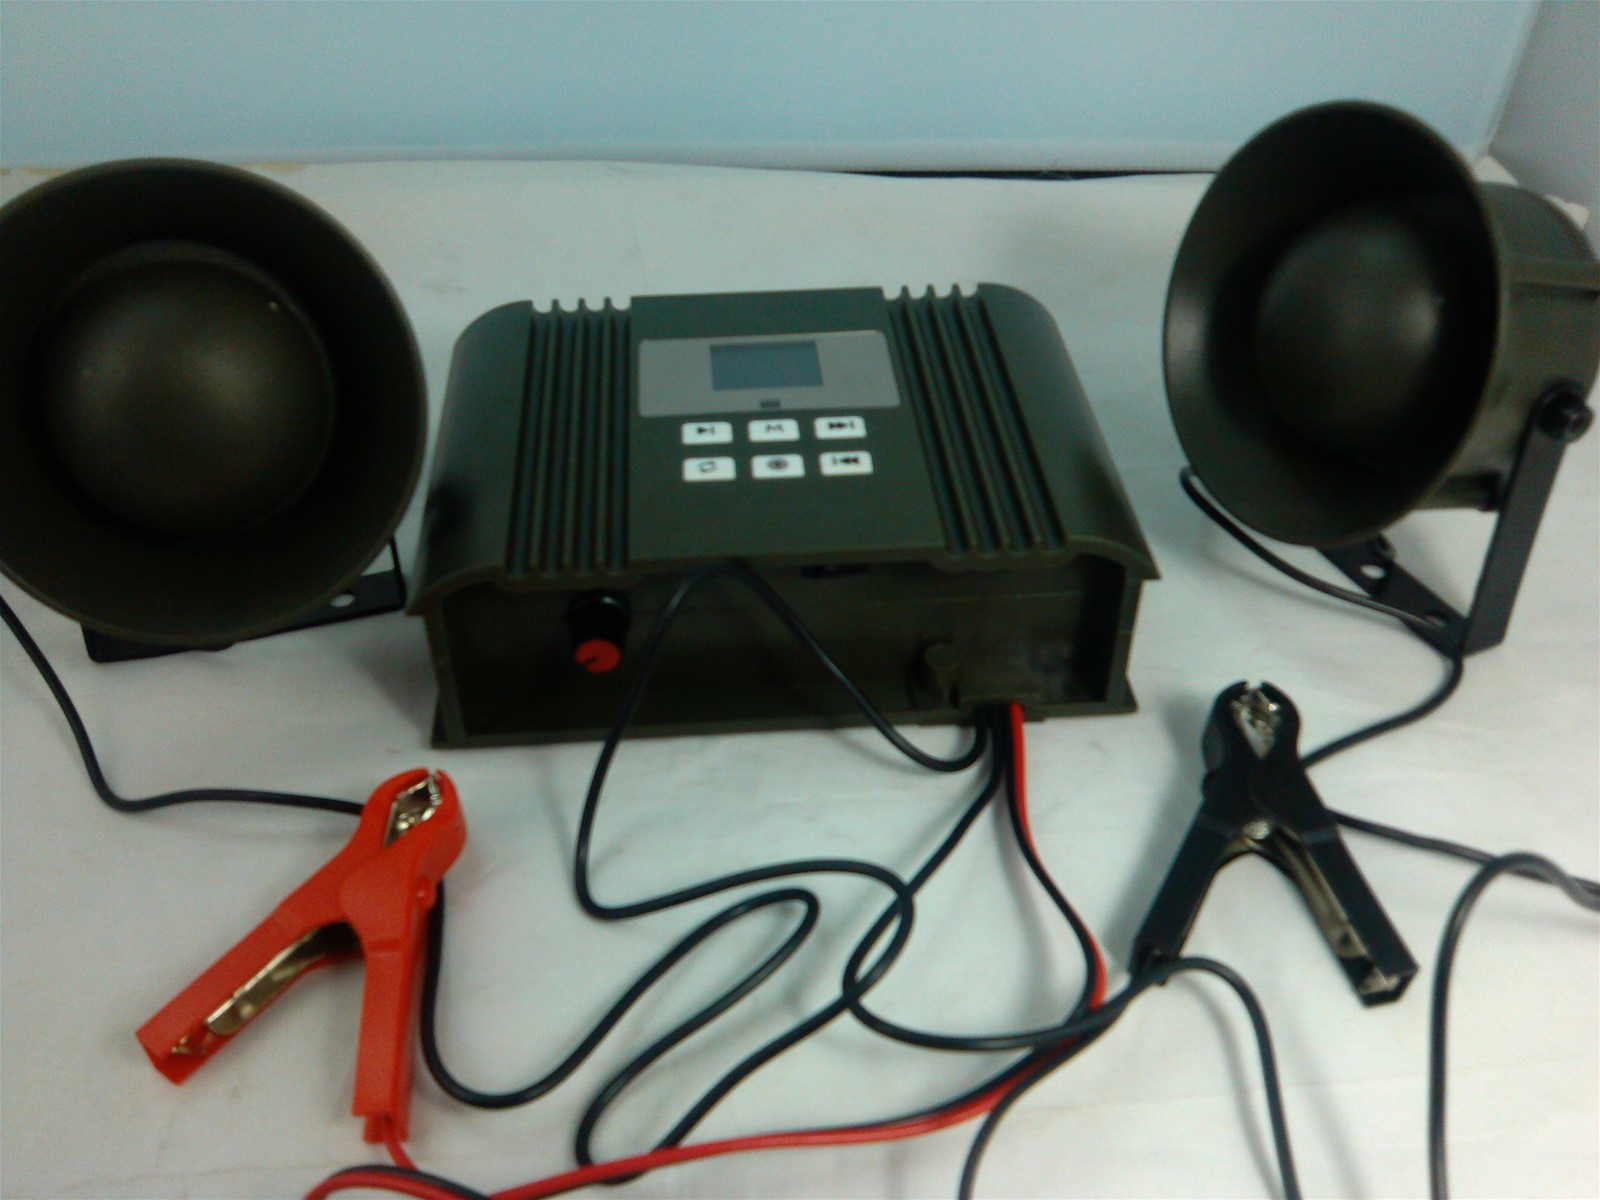 Desert machine hottest selling decoy with 182 sounds and support two external speakers cp-392